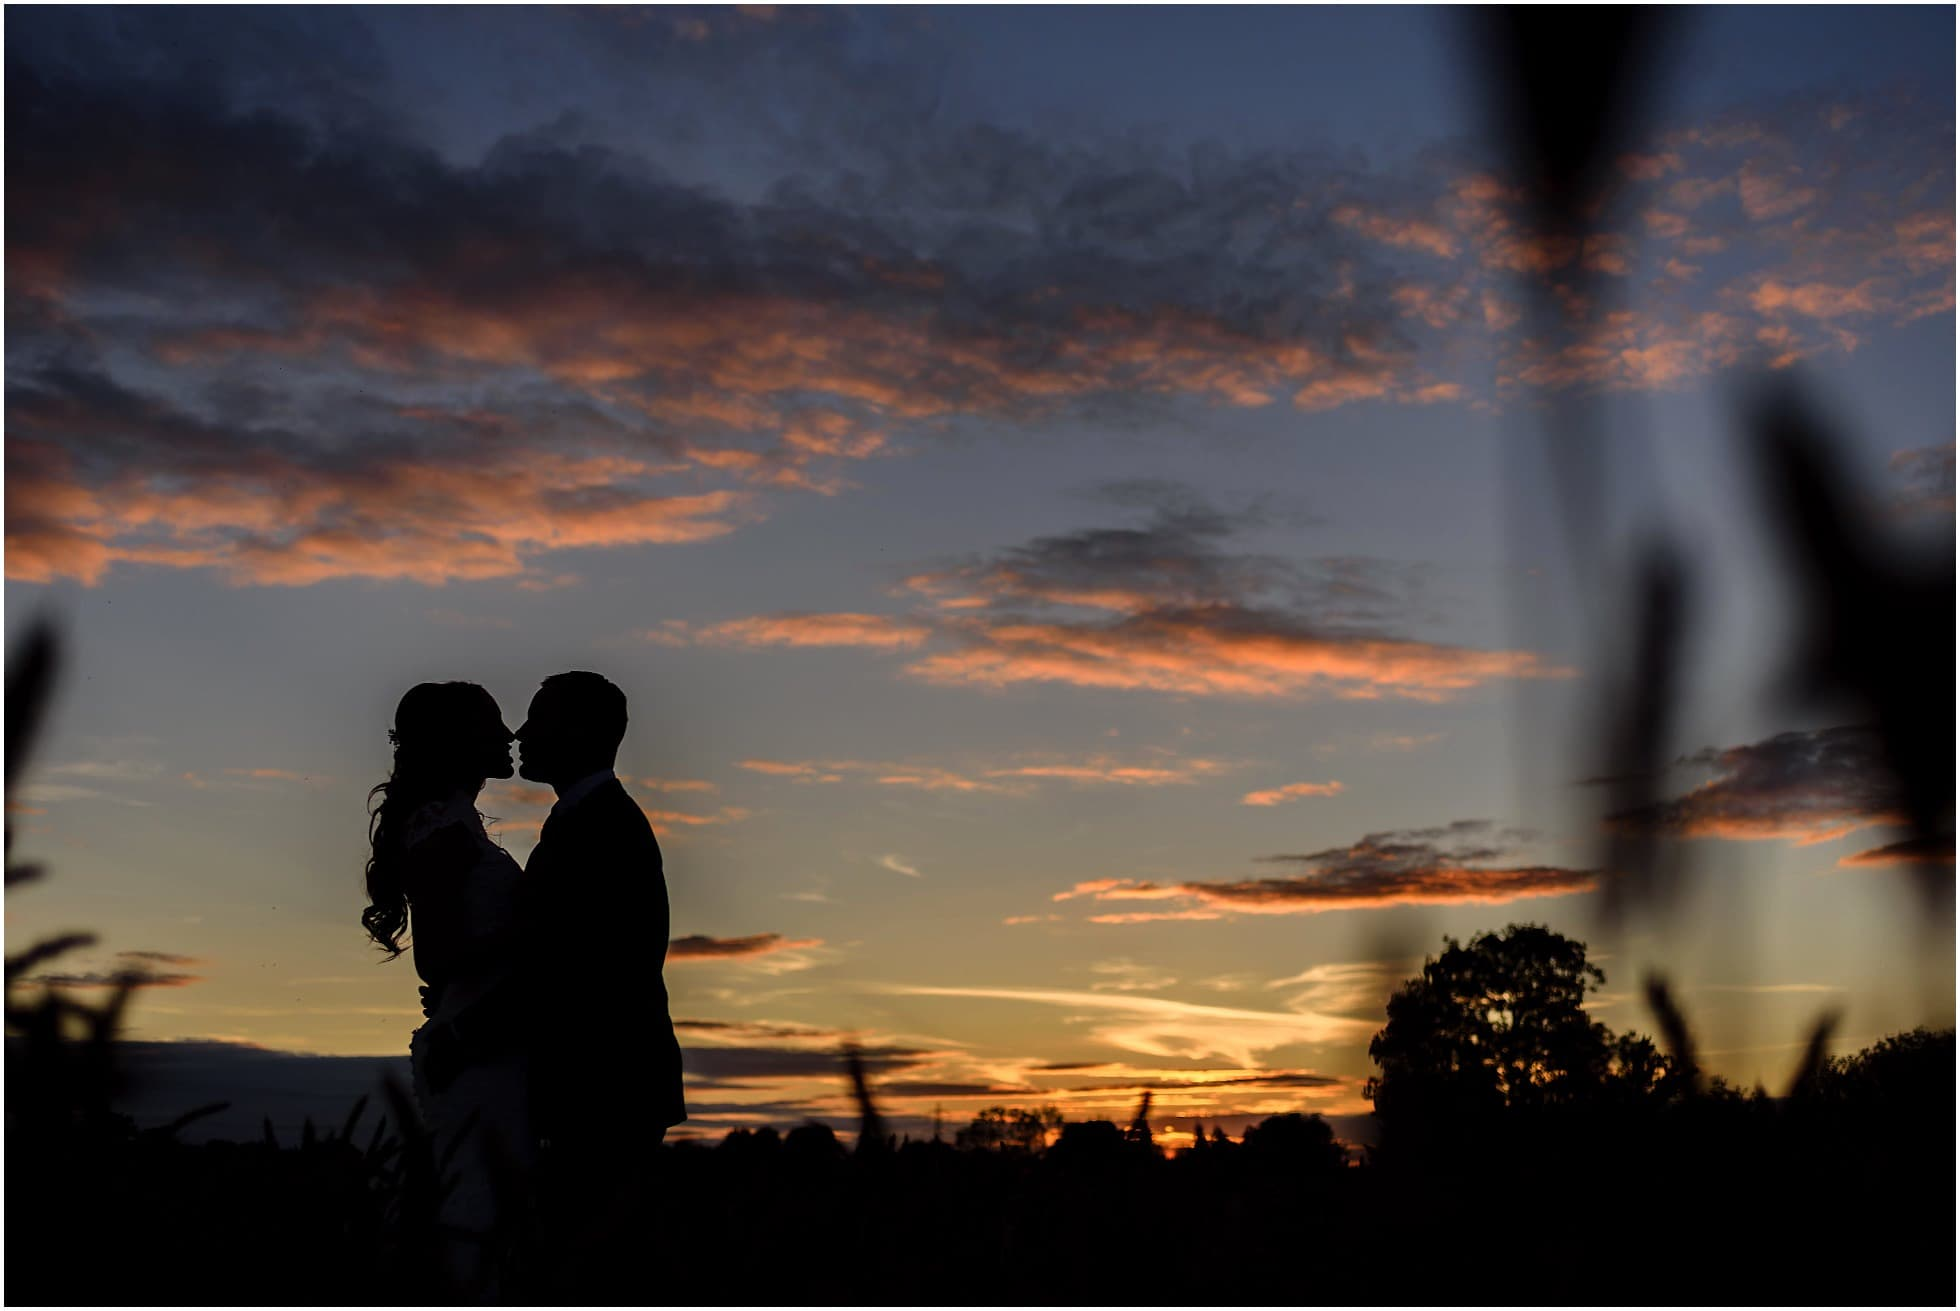 romantic sunset silhouette